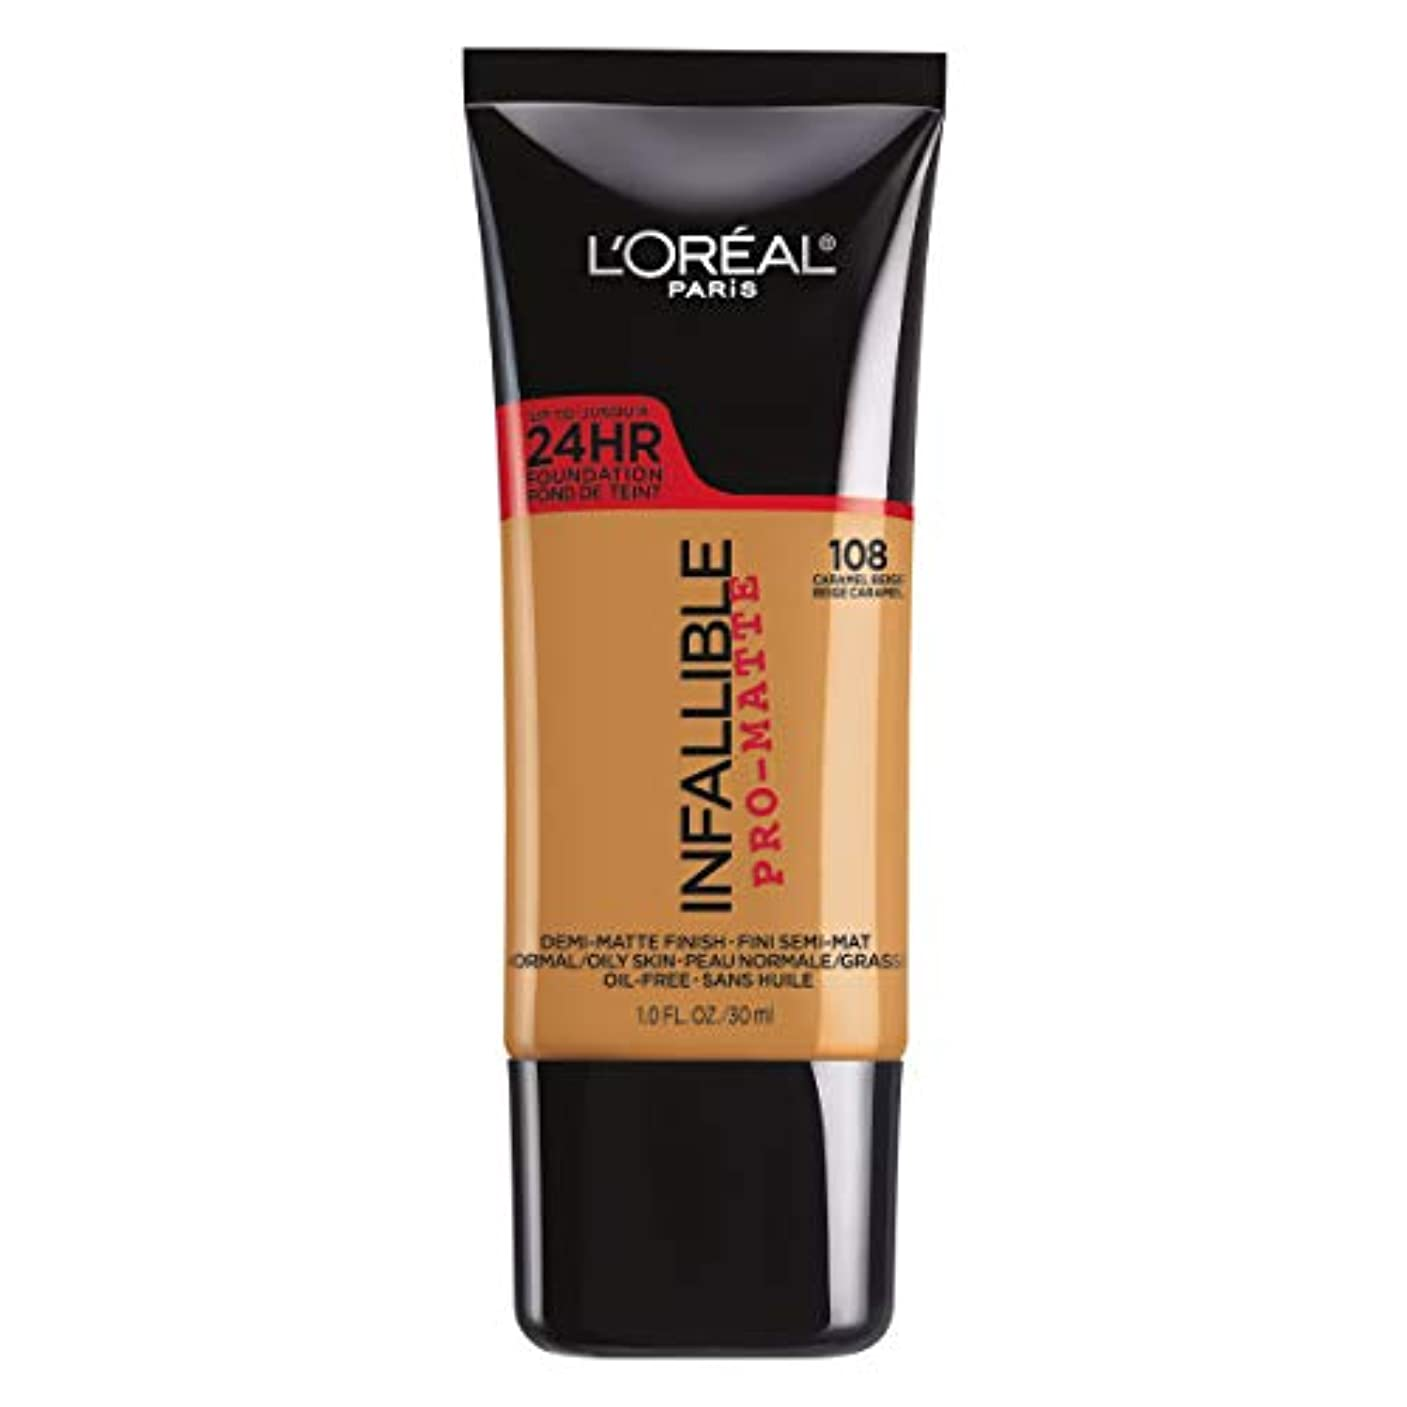 流行しているバッジ薄めるL'Oreal Paris Infallible Pro-Matte Foundation Makeup, 108 Caramel Beige, 1 fl. oz[並行輸入品]